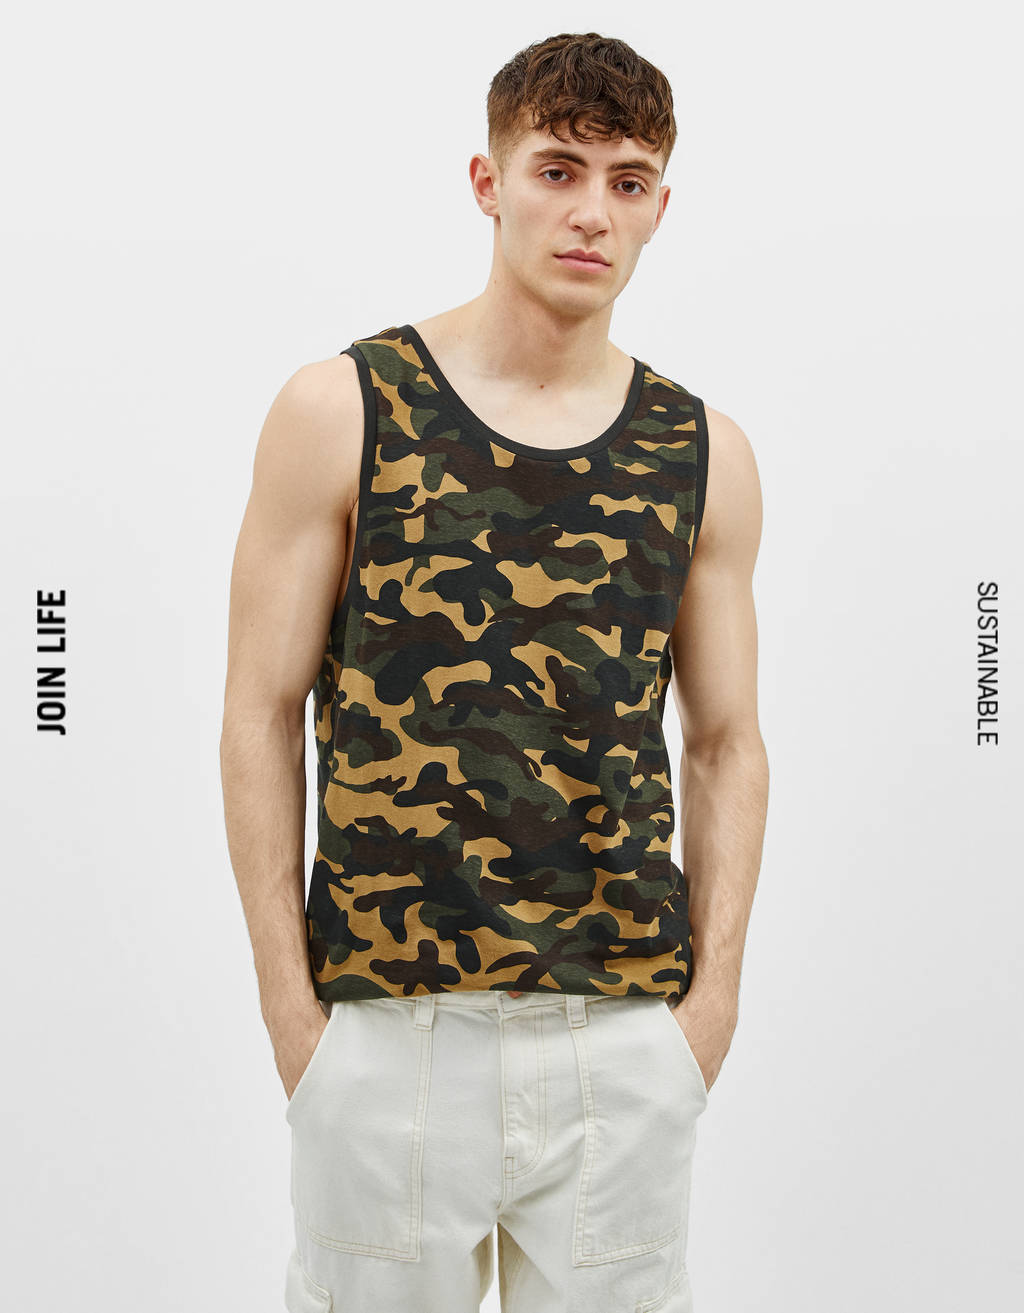 Sleeveless t-shirt with print